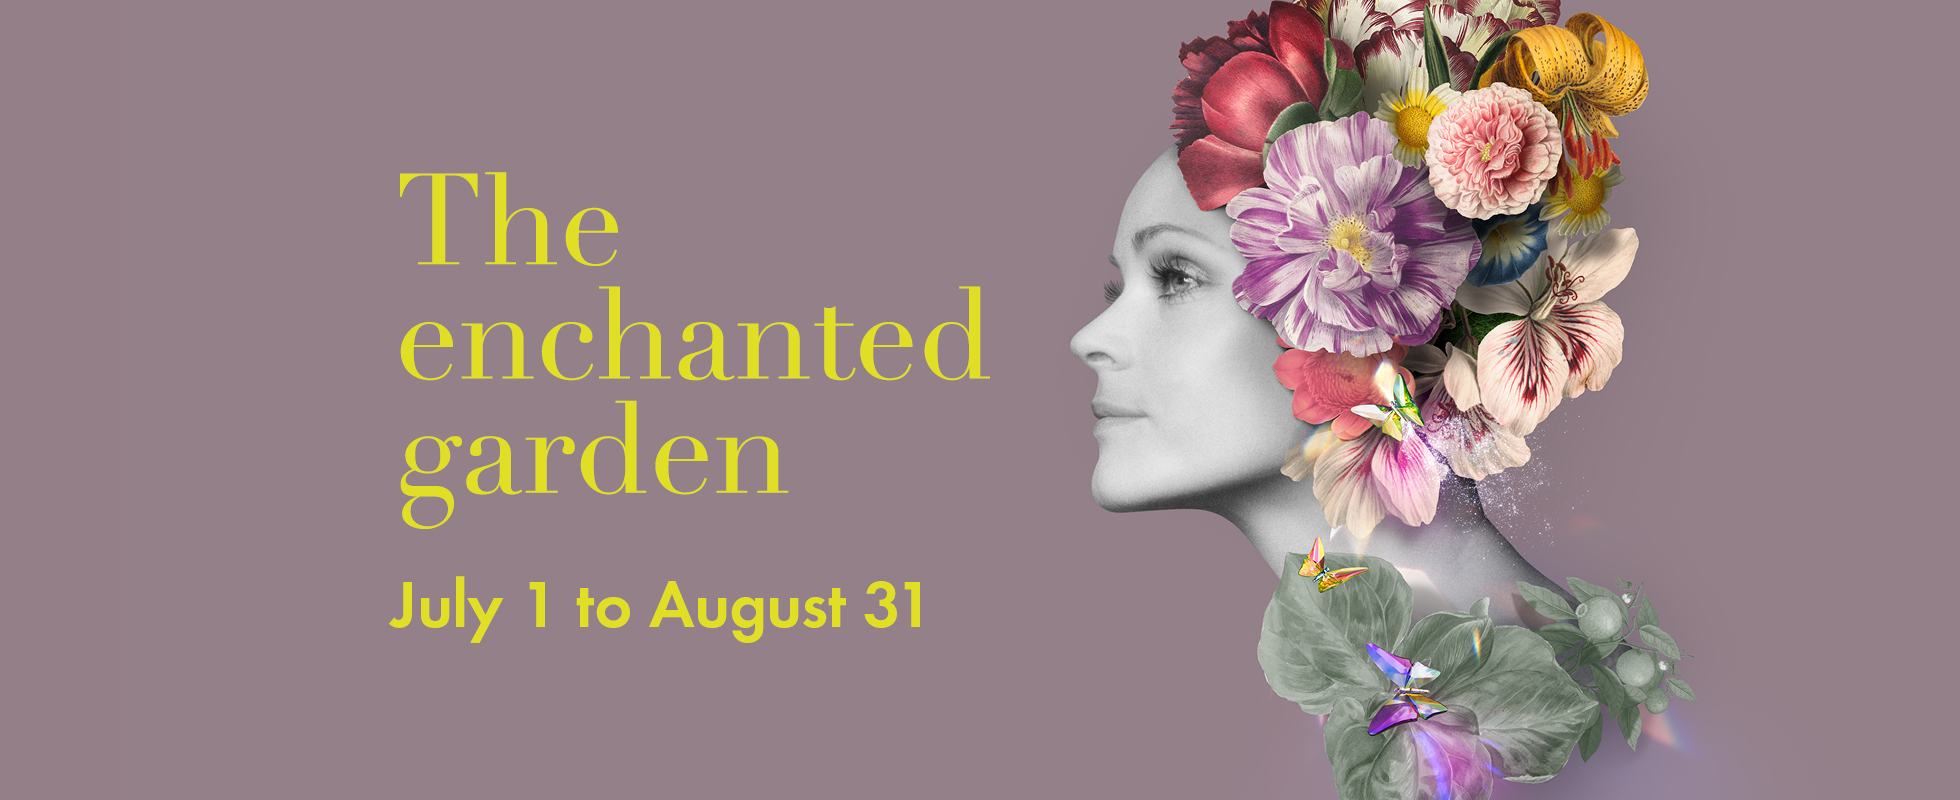 "Summer festival ""Enchanted garden"""